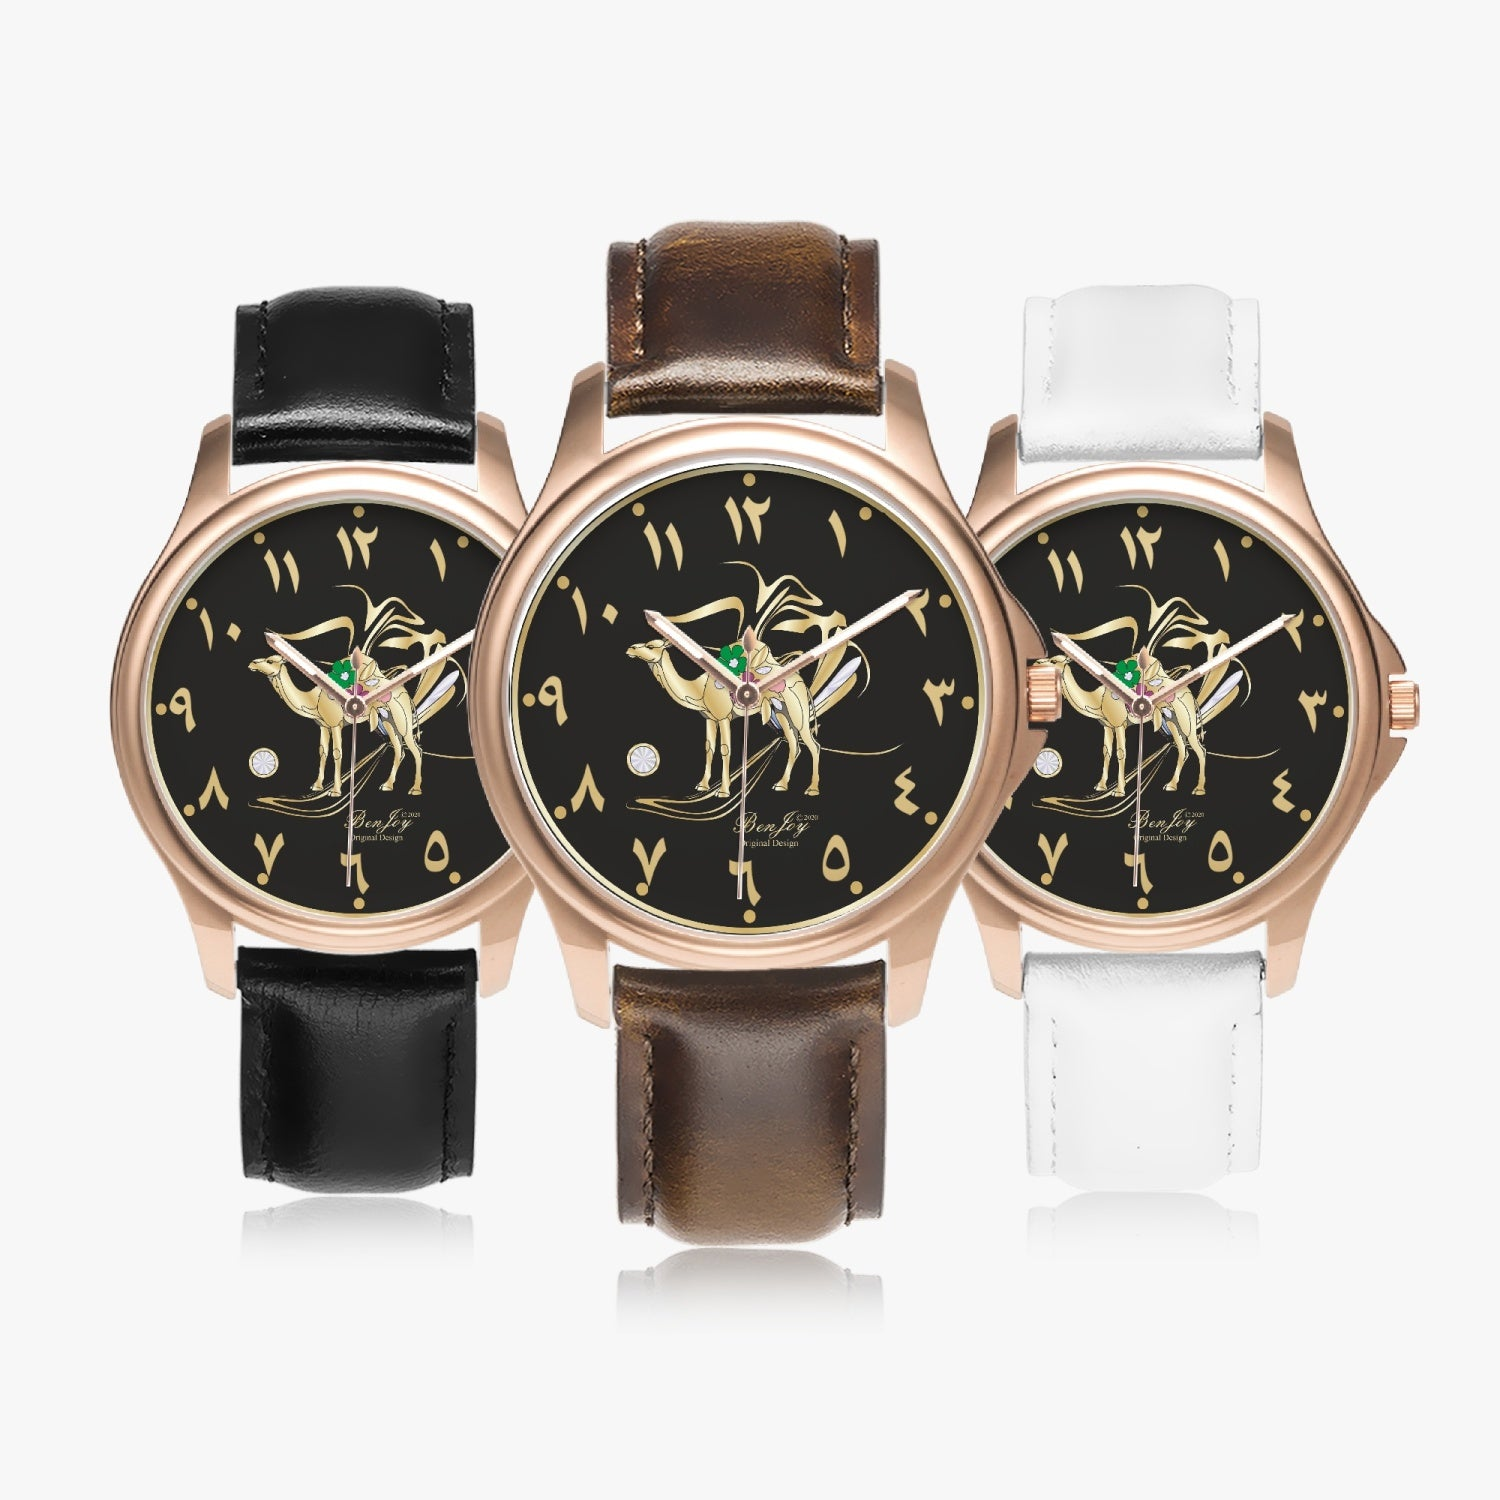 Camel Torch Rose Gold Leather Watch by BenJoy